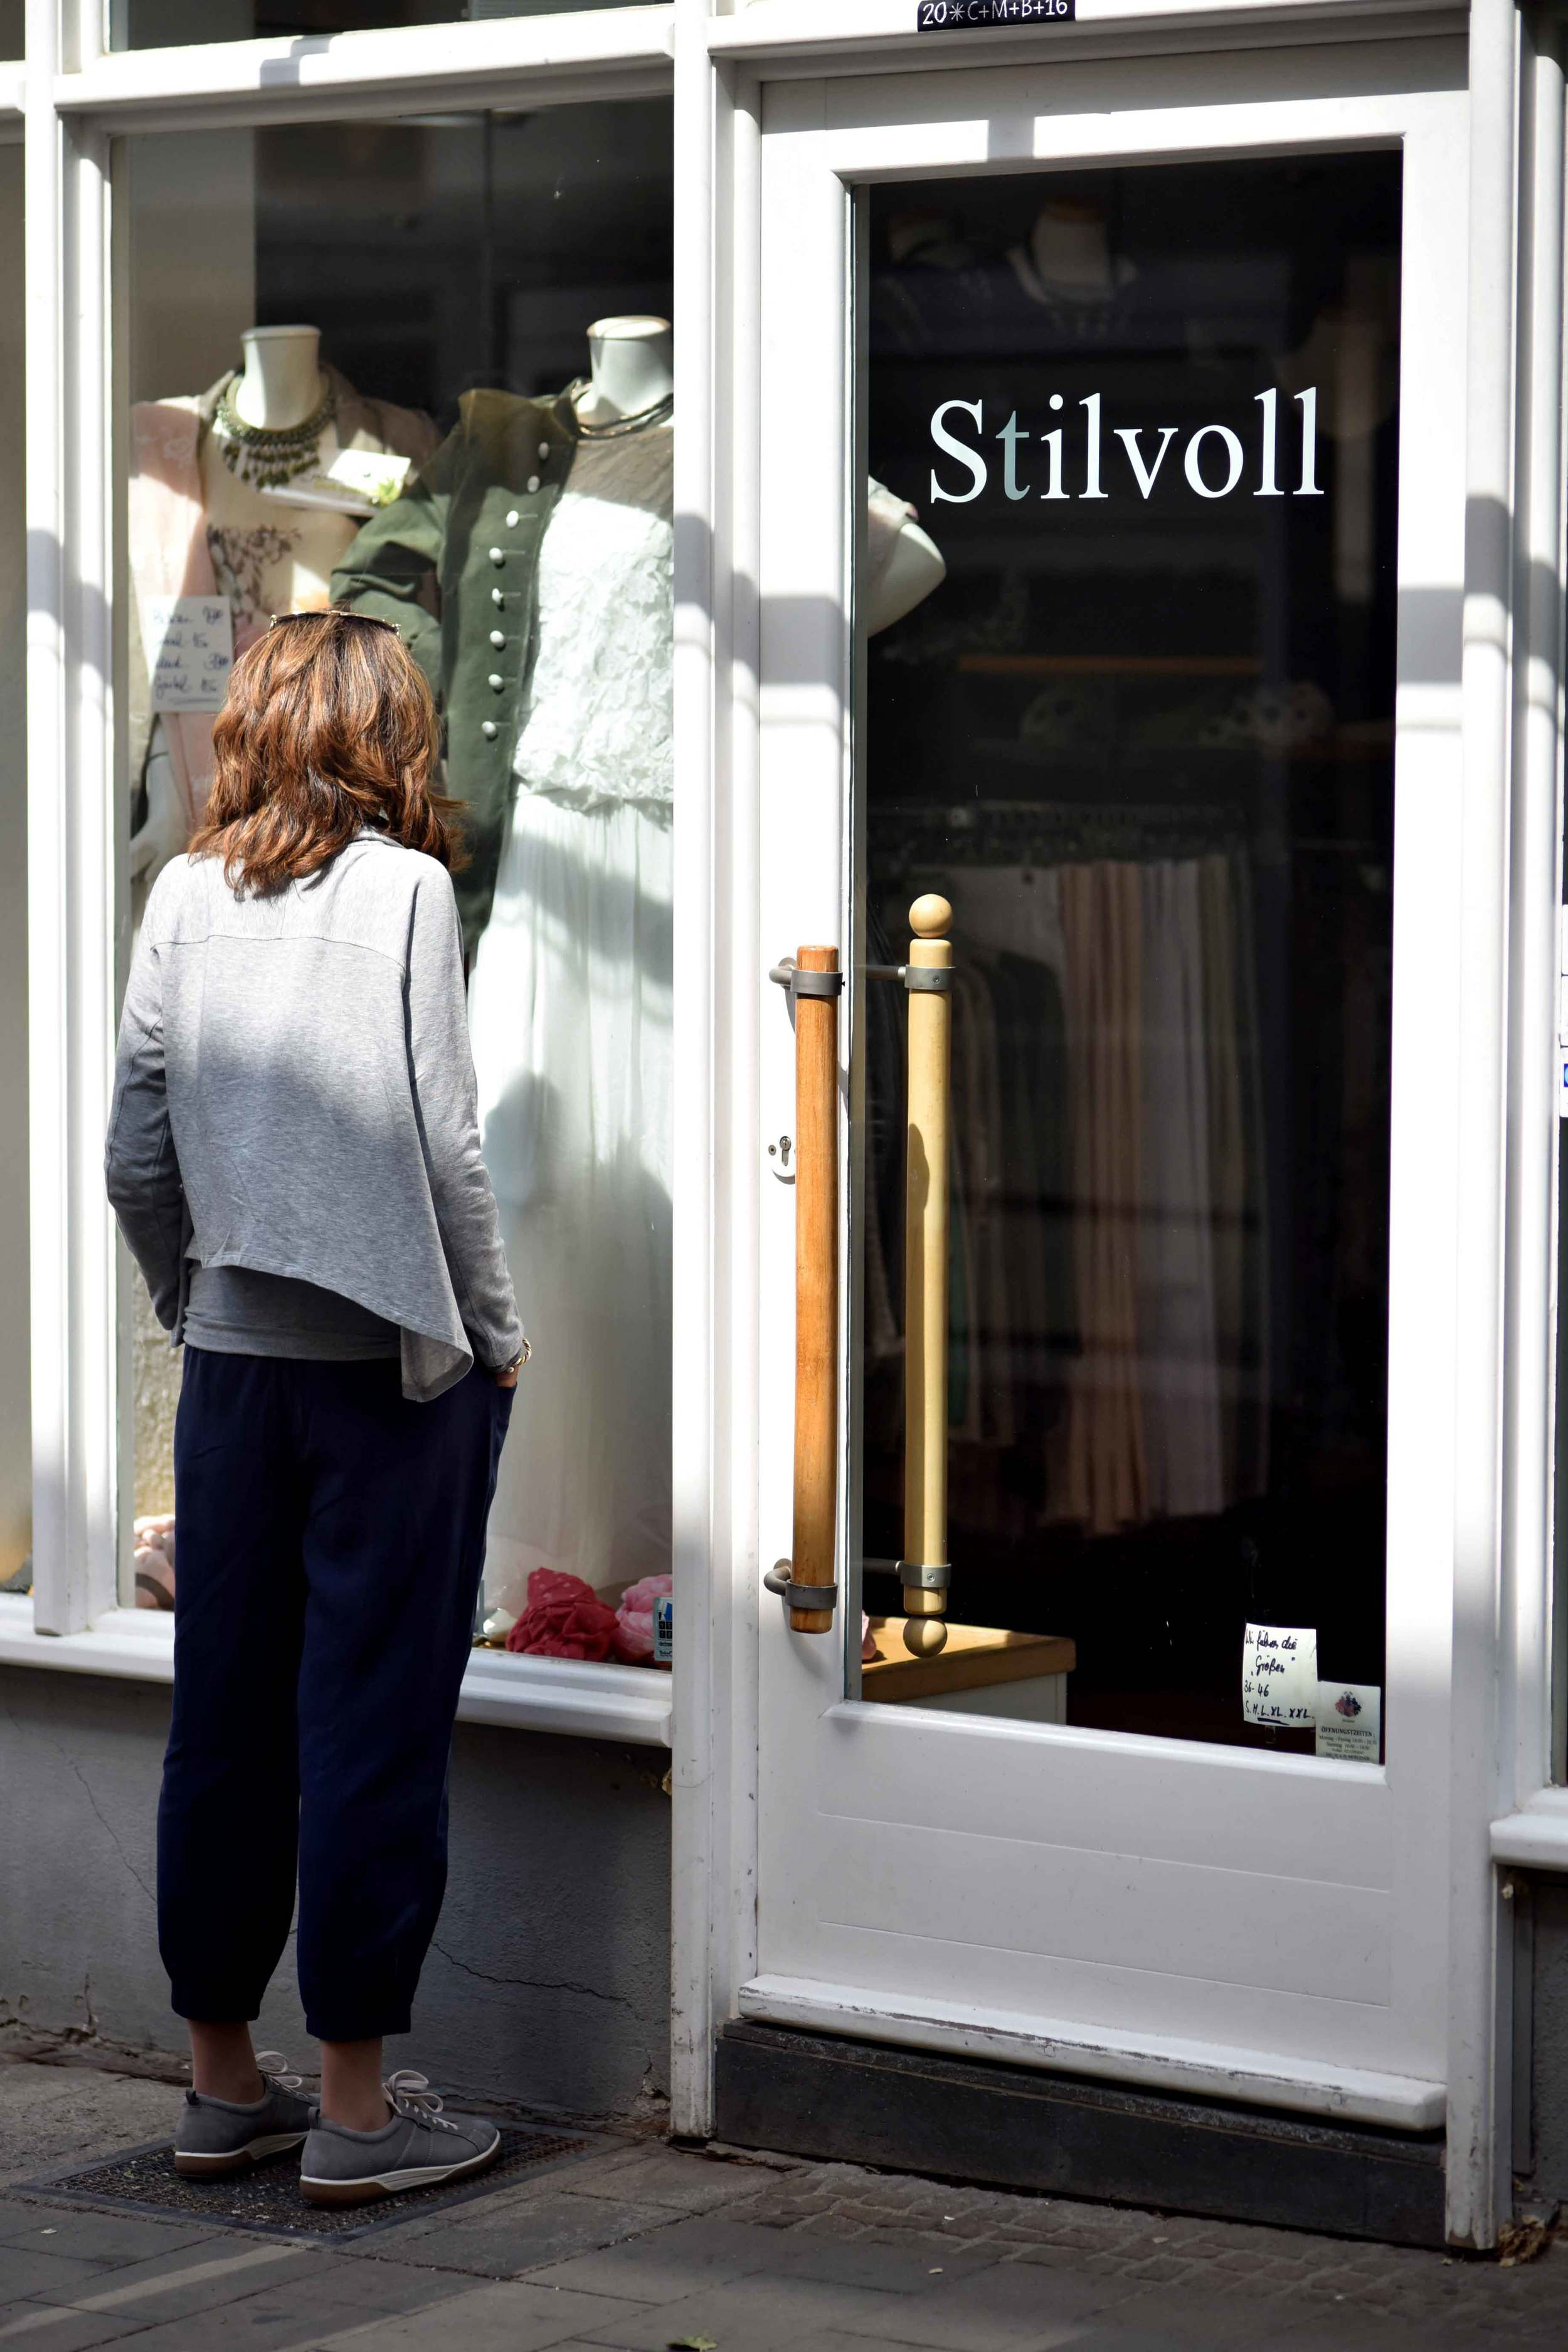 Stilvol  in English means full of style. Eileen Fisher Cropped Tapered Lightweight Tencel Twill Pants in Midnight, Eileen Fisher Funnel Neck Drapey Tencel Terry Cropped Top in Moon. Image©sourcingstyle.com, Photo: Nicola Nolting